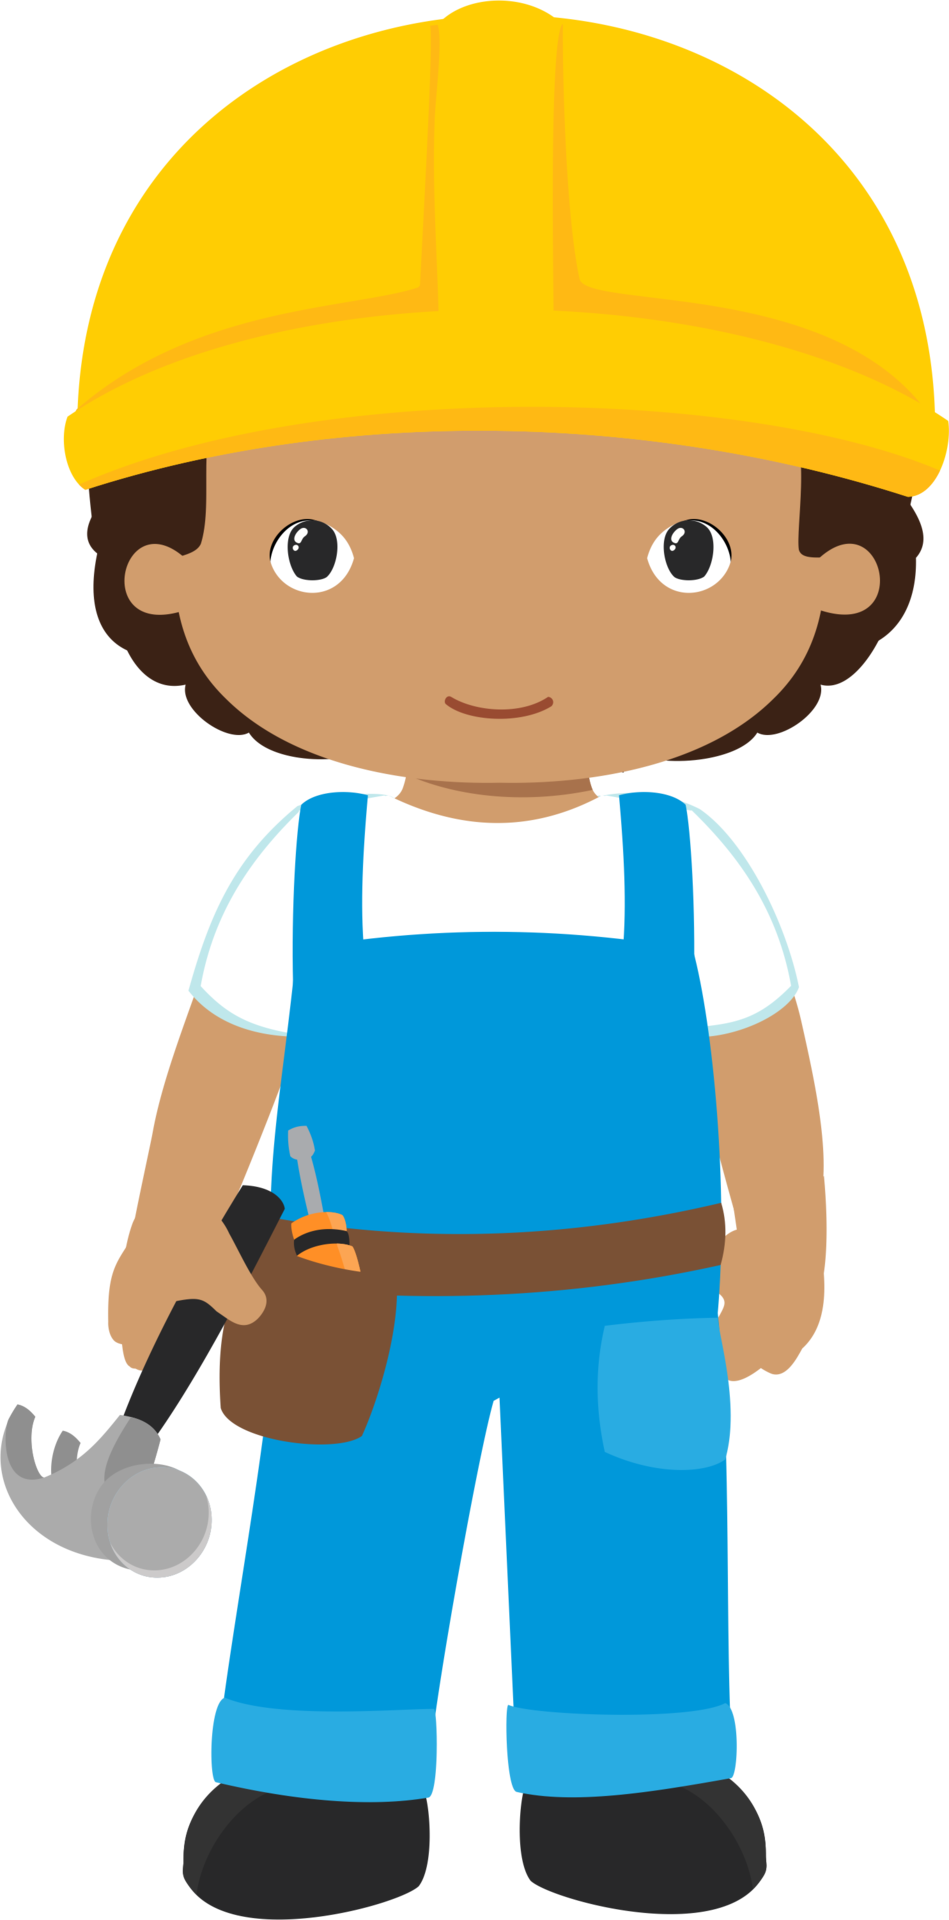 It's just an image of Gorgeous Bob the Builder Clipart